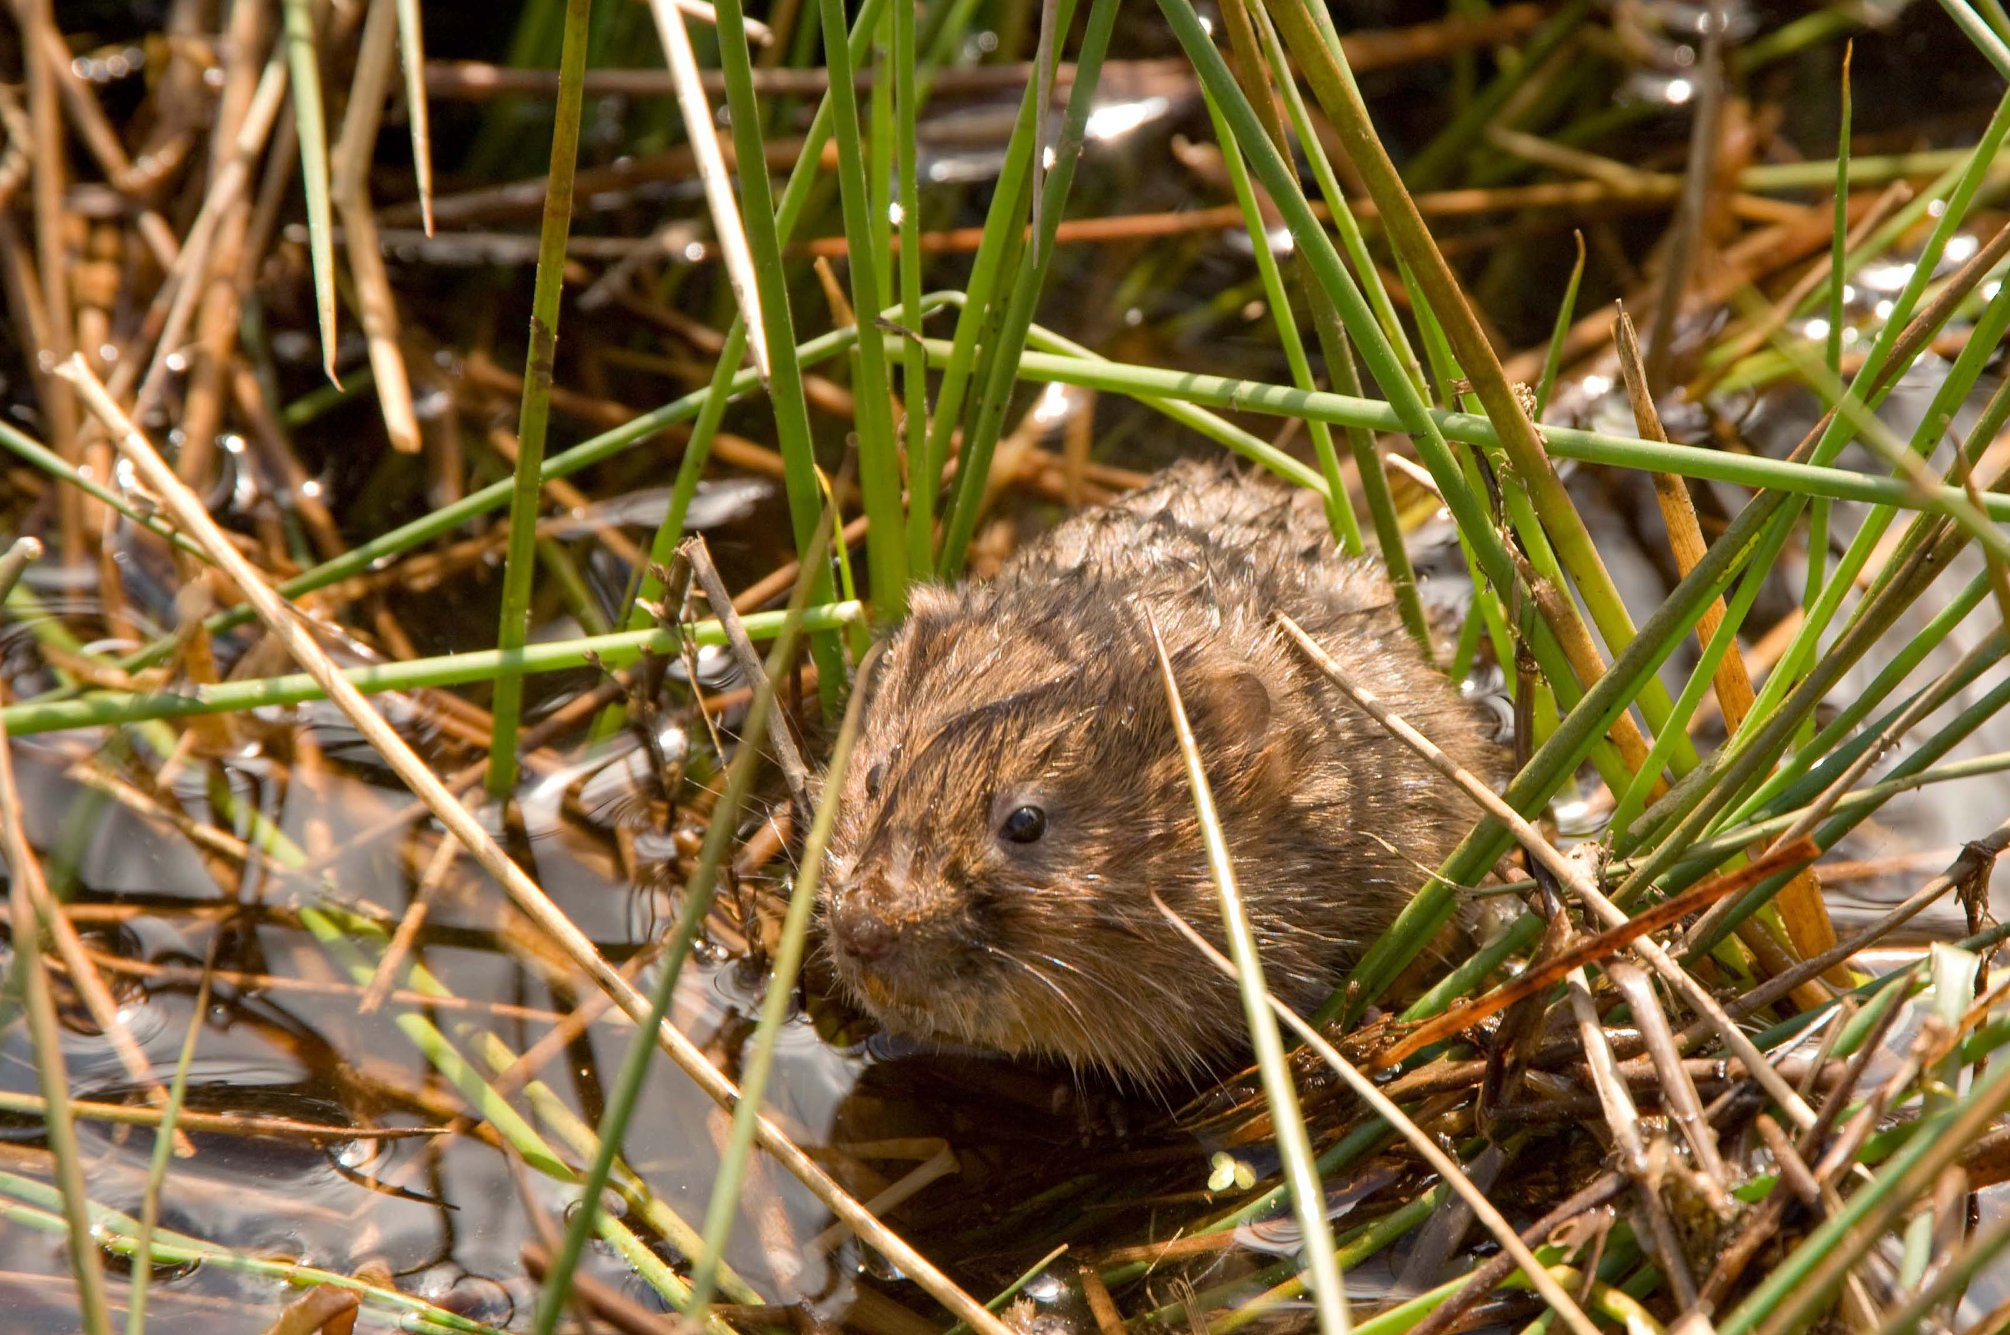 A water vole sitting in long grass.